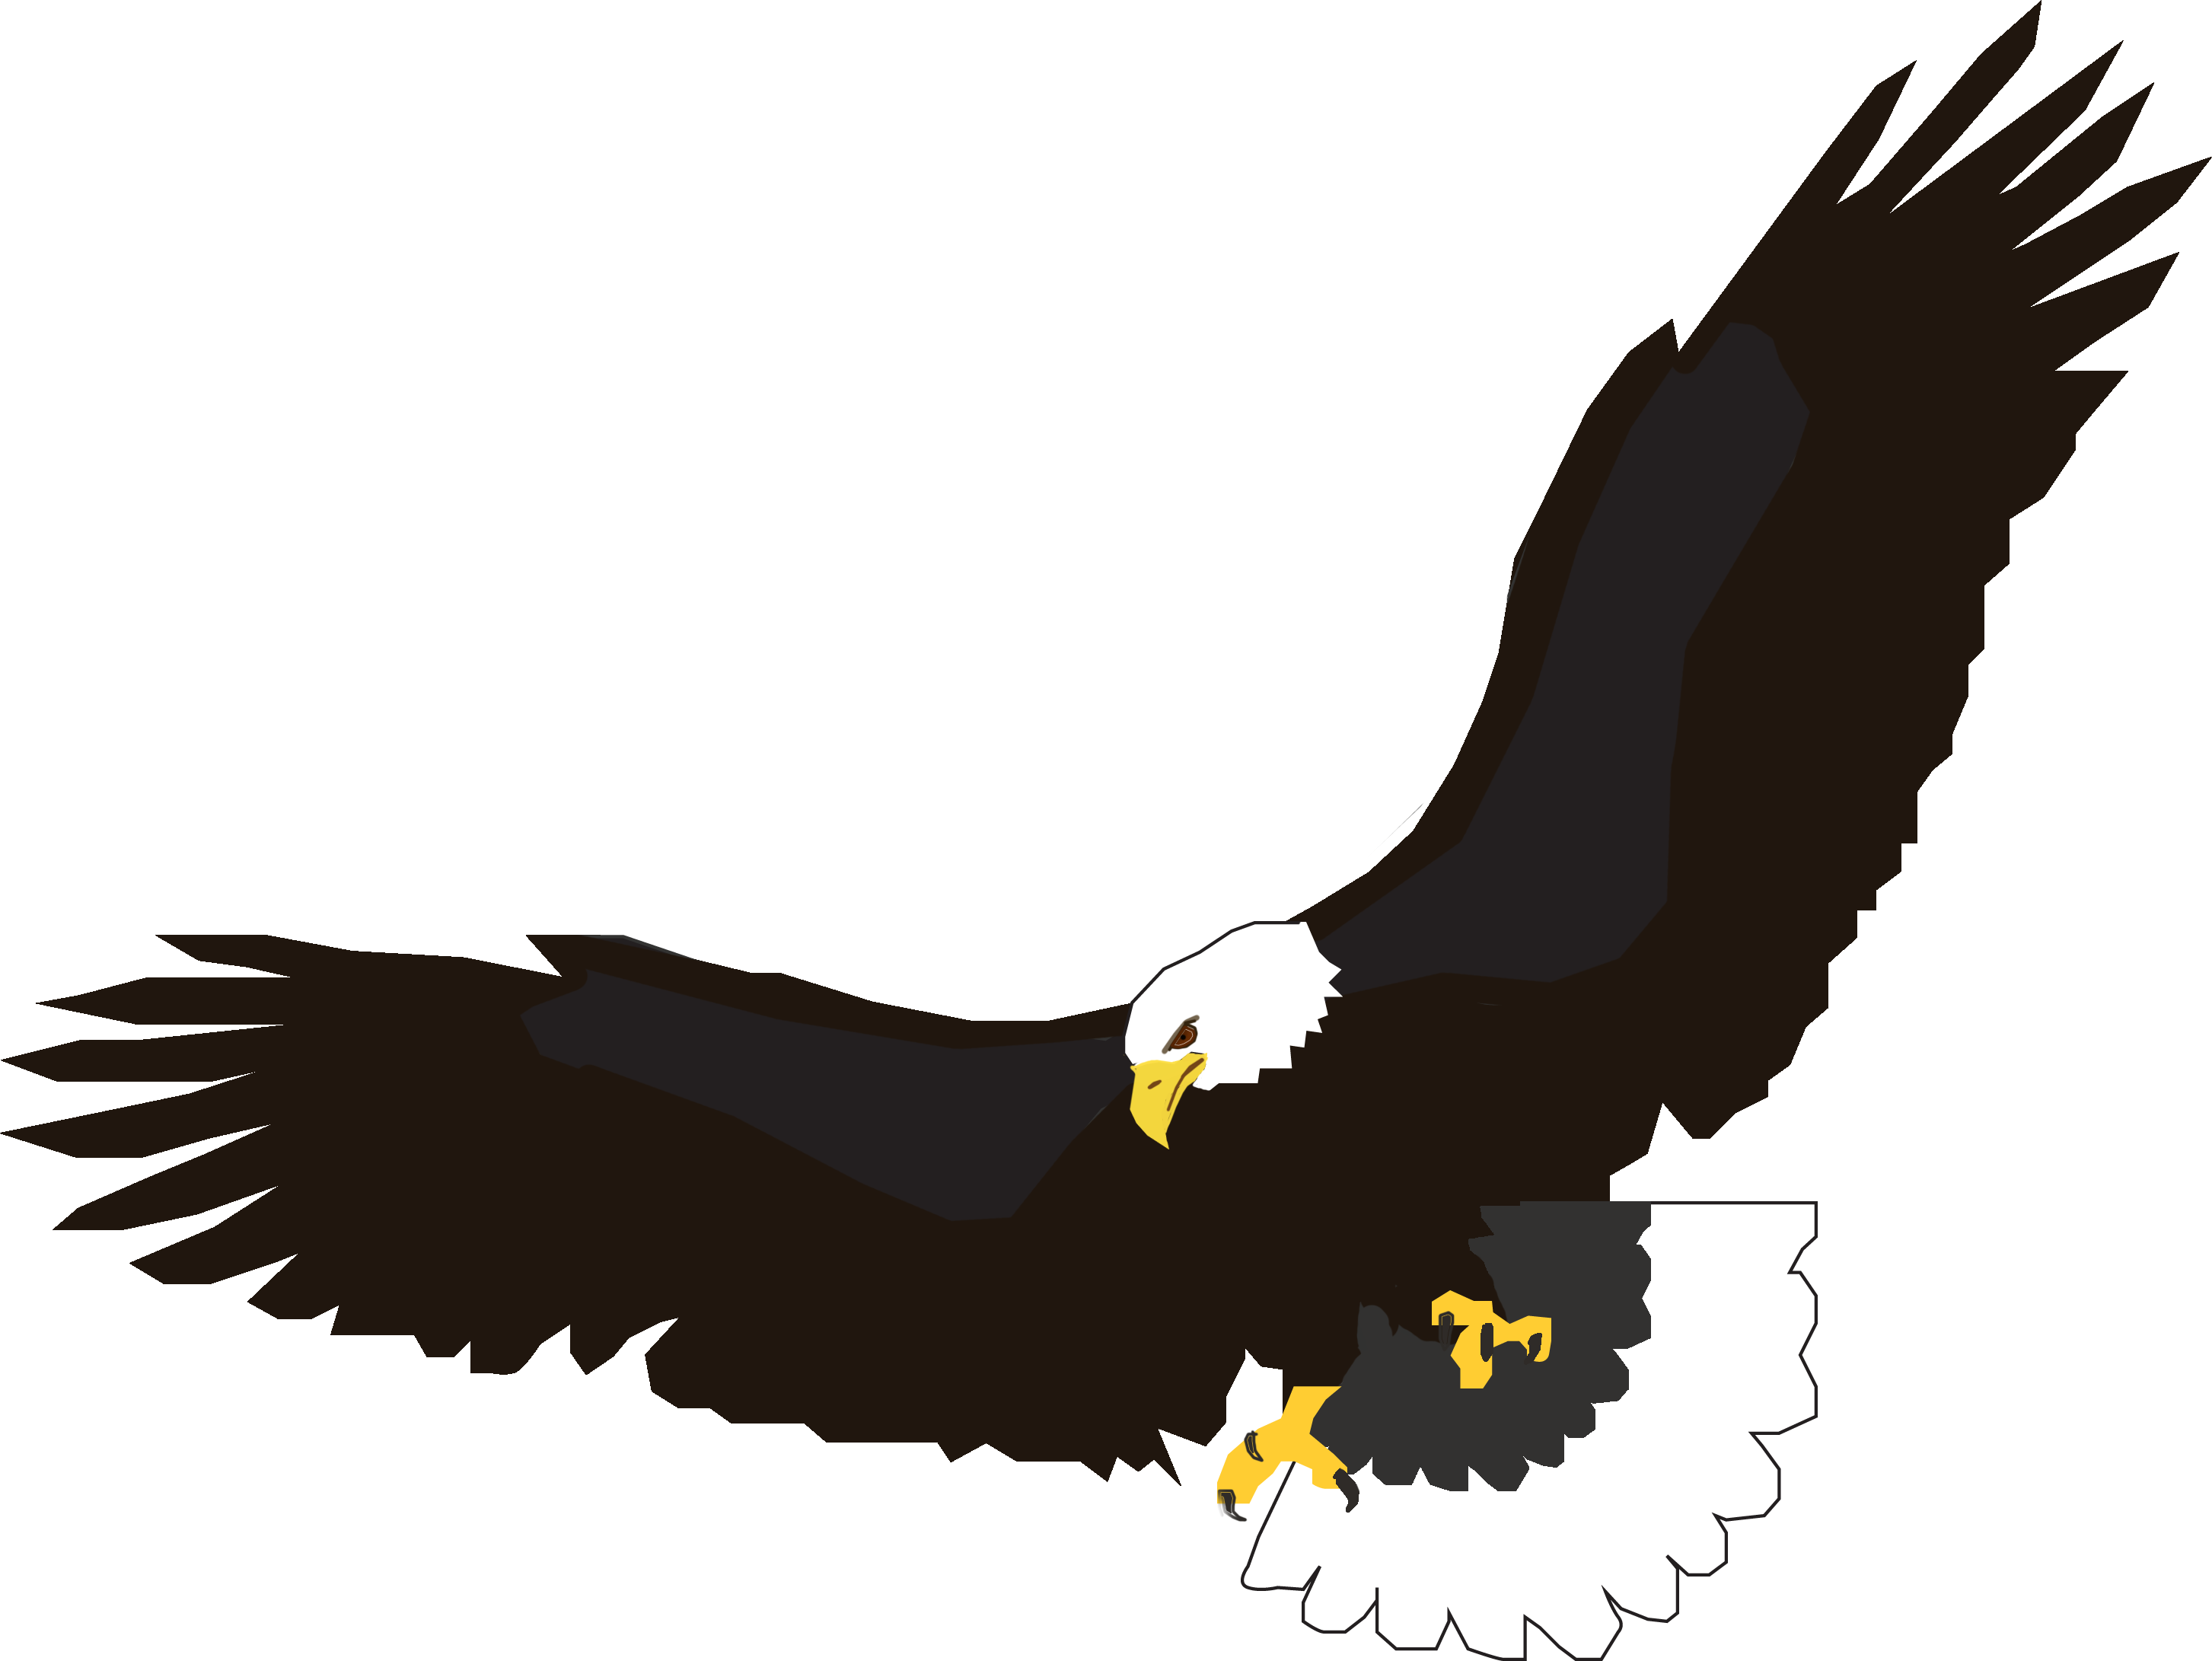 Pictures Of Eagles Wings Free Cliparts That You Can Download To You